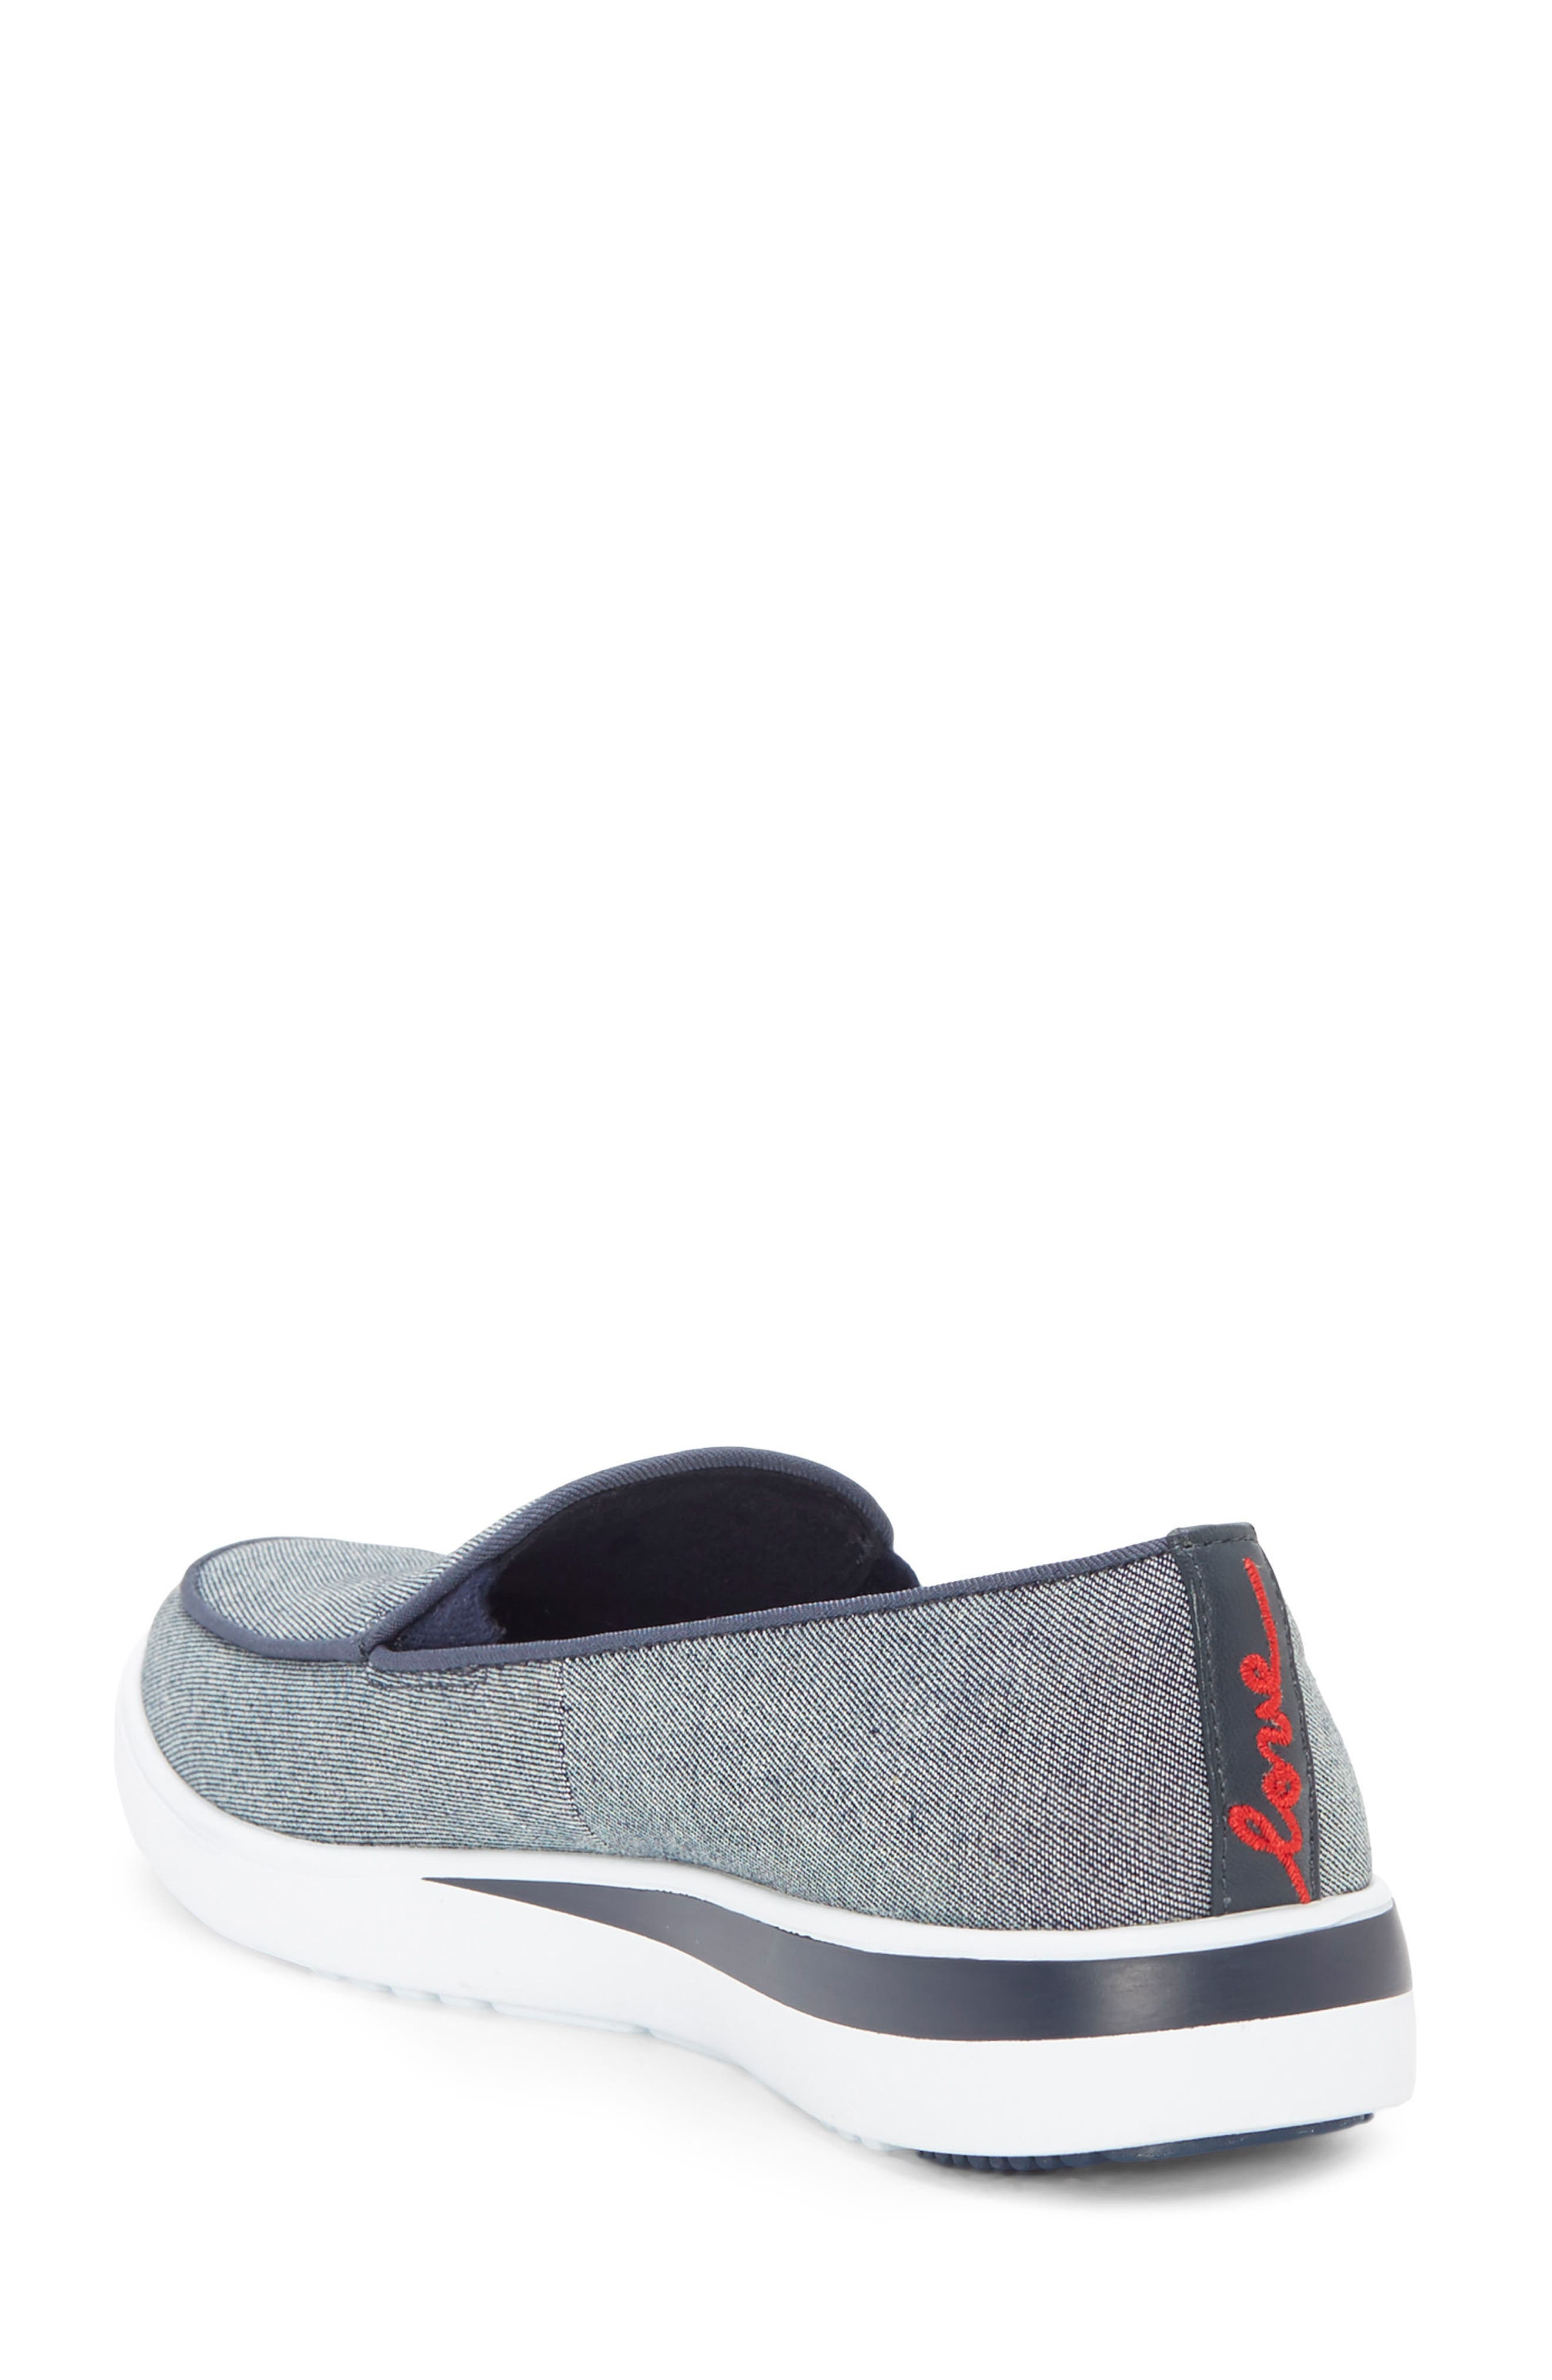 Antona Slip-On Sneaker,                             Alternate thumbnail 2, color,                             Blue Fabric